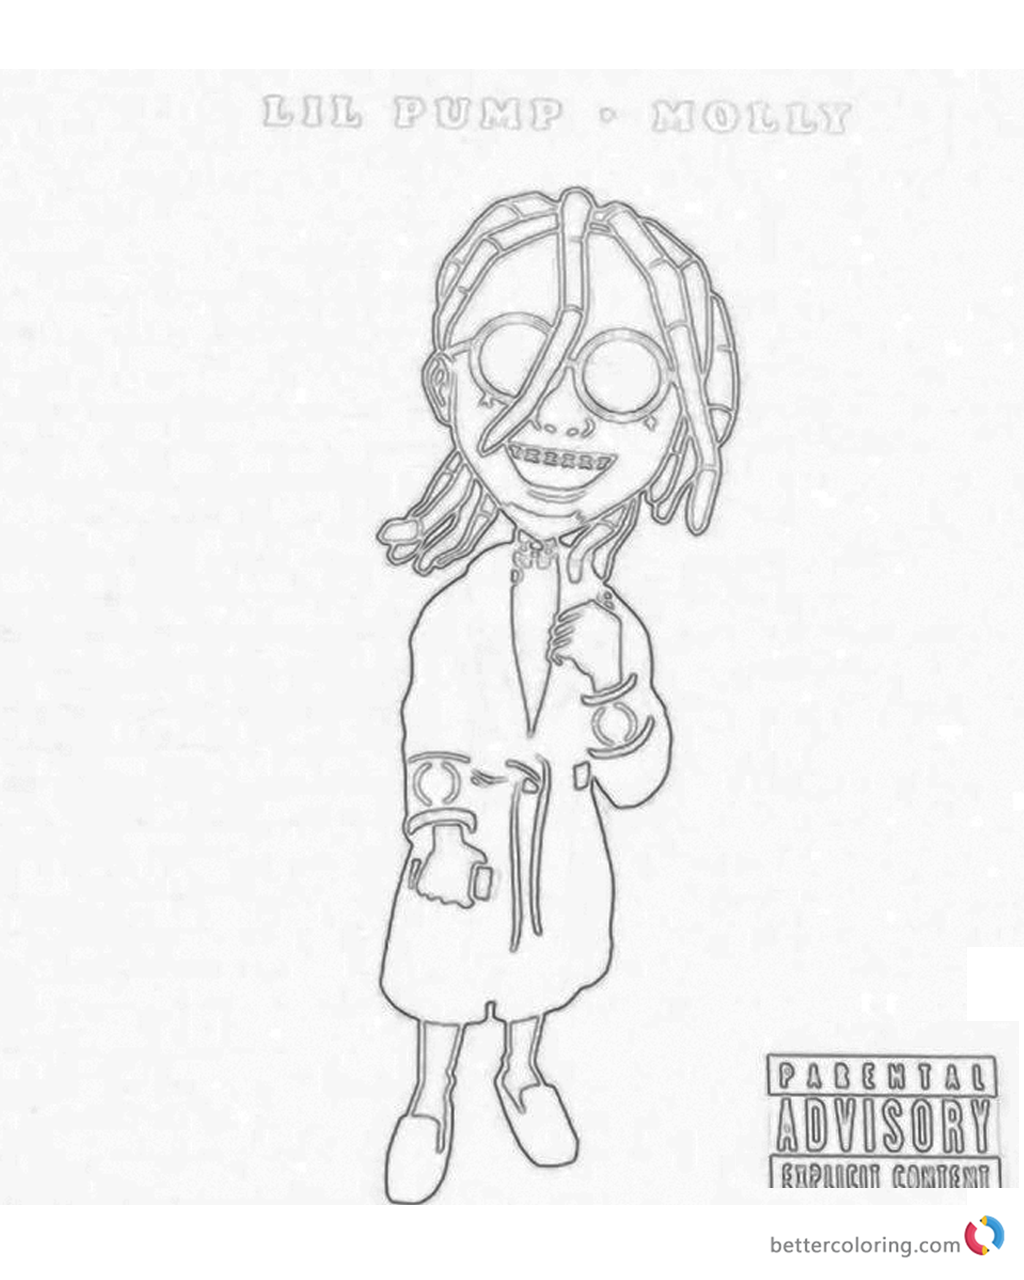 Lil Pump Coloring Pages Molly - Free Printable Coloring Pages